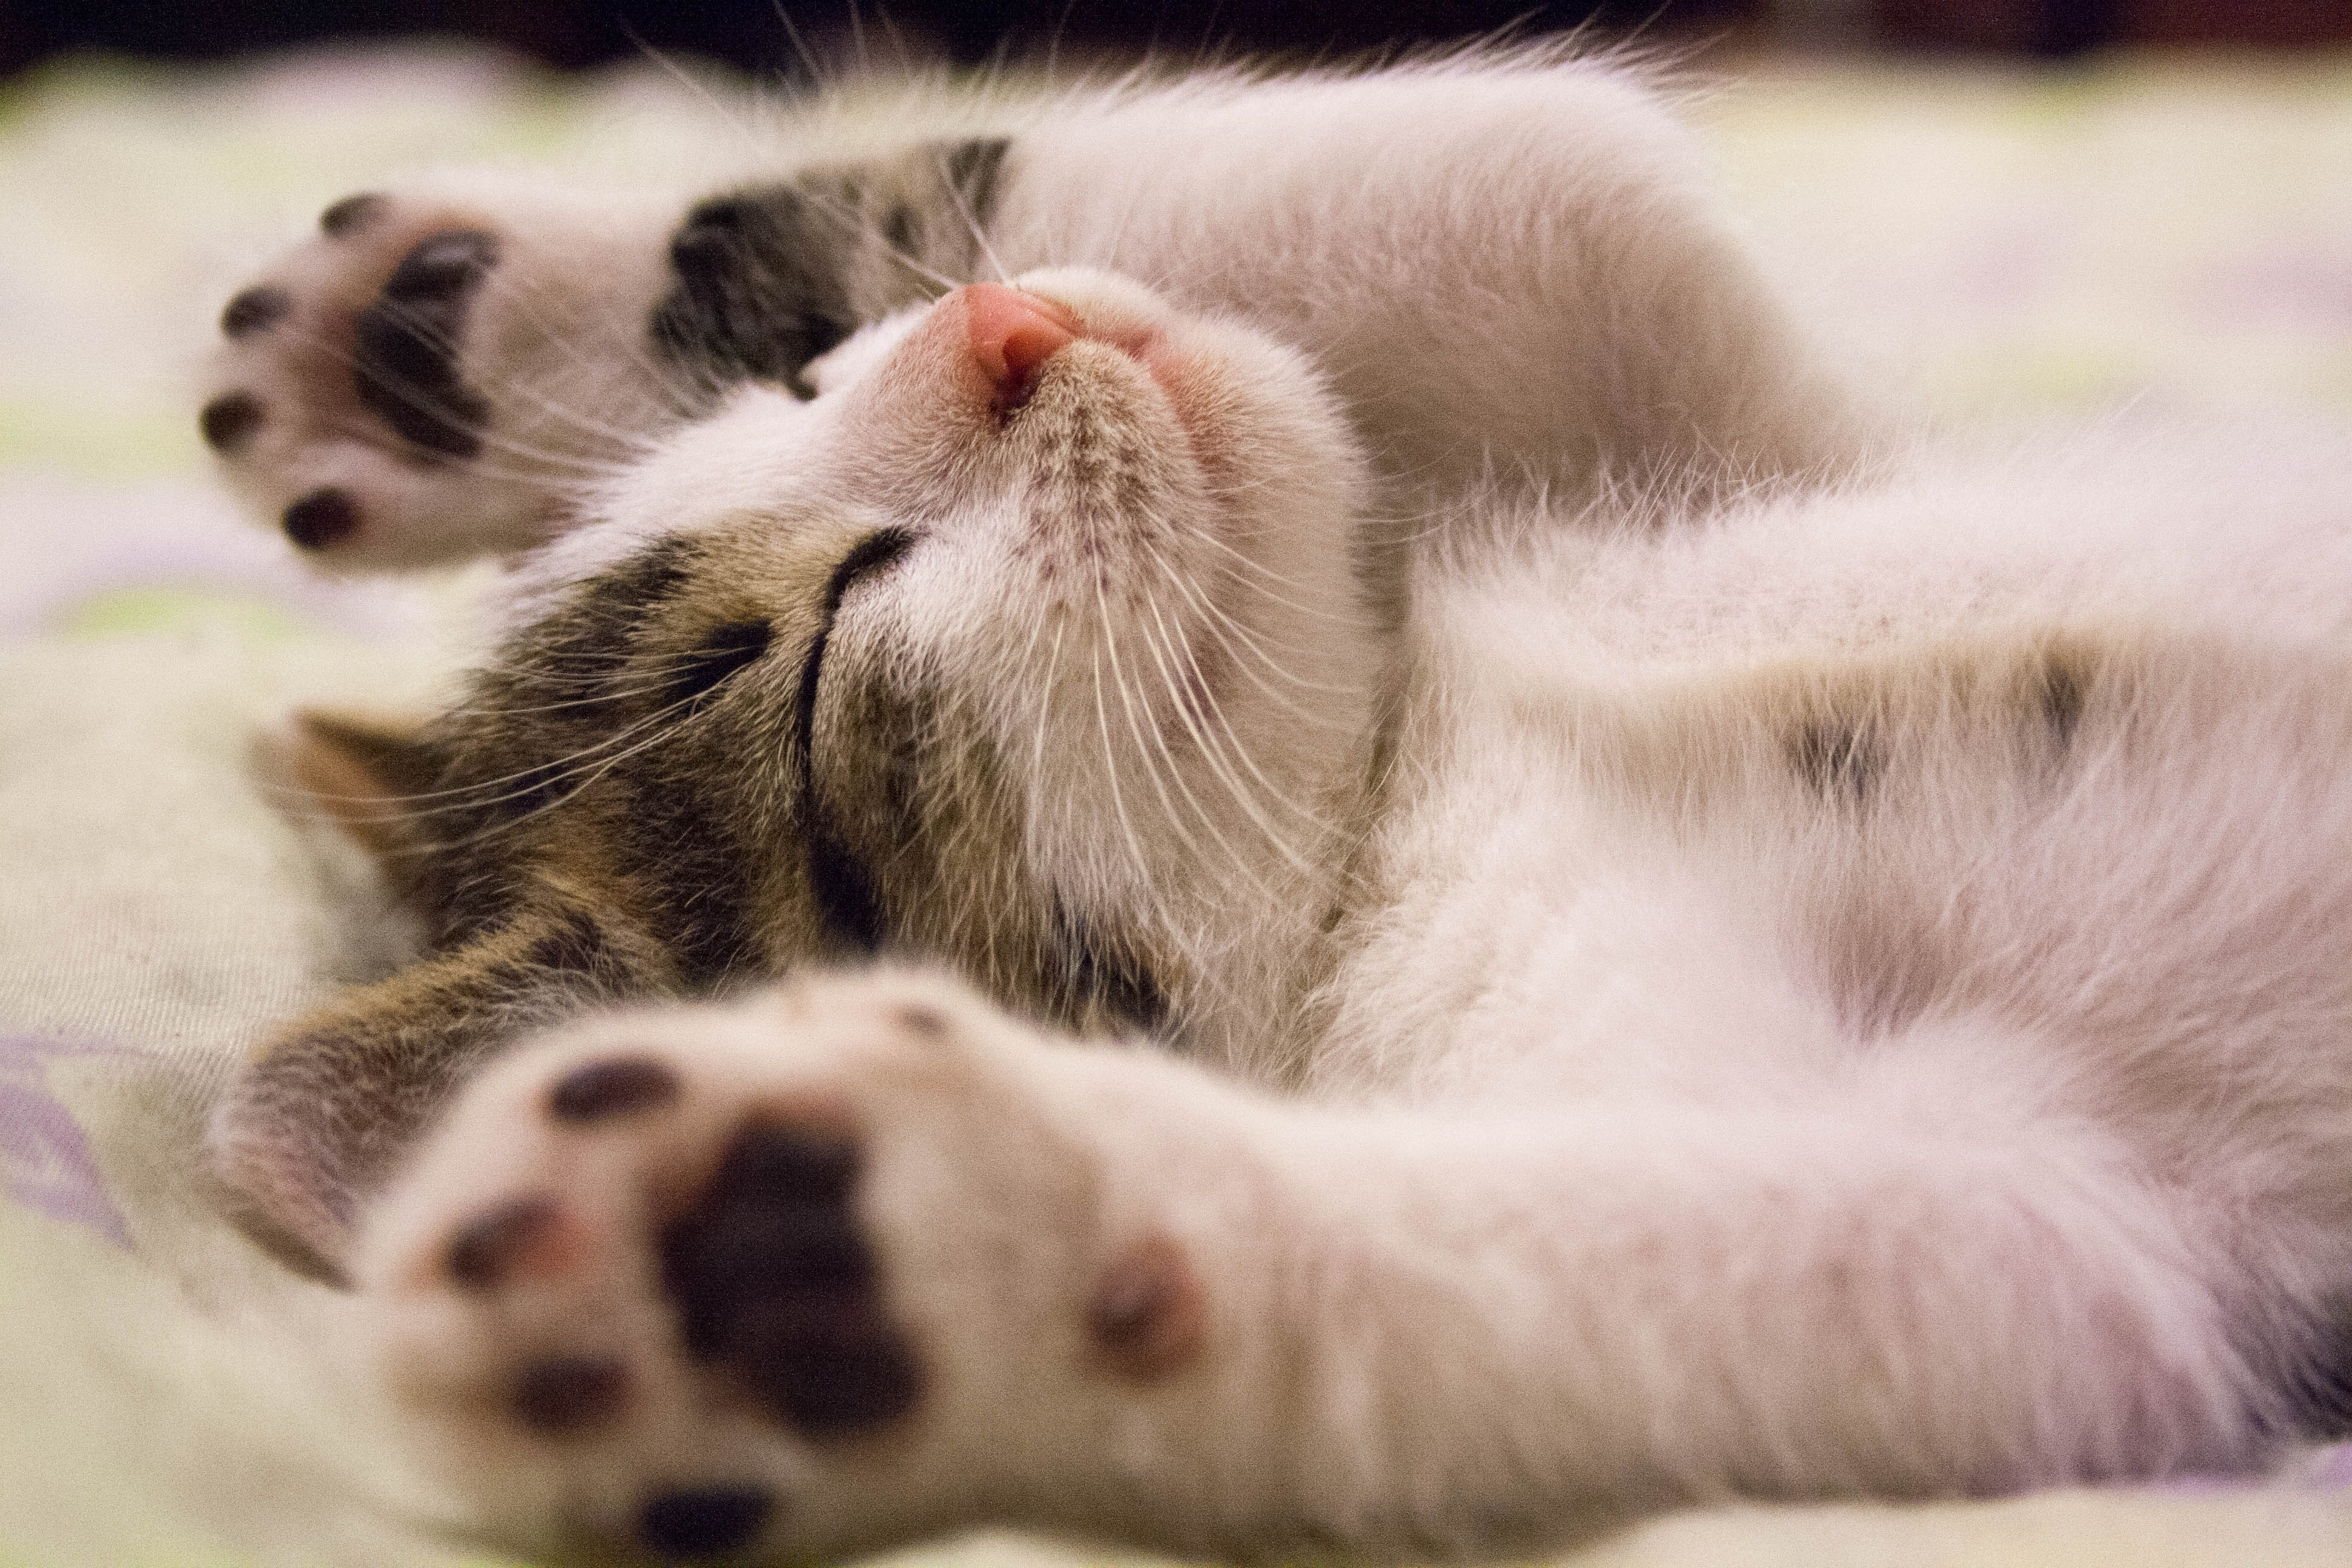 What Does it Mean to Dream About Cats?